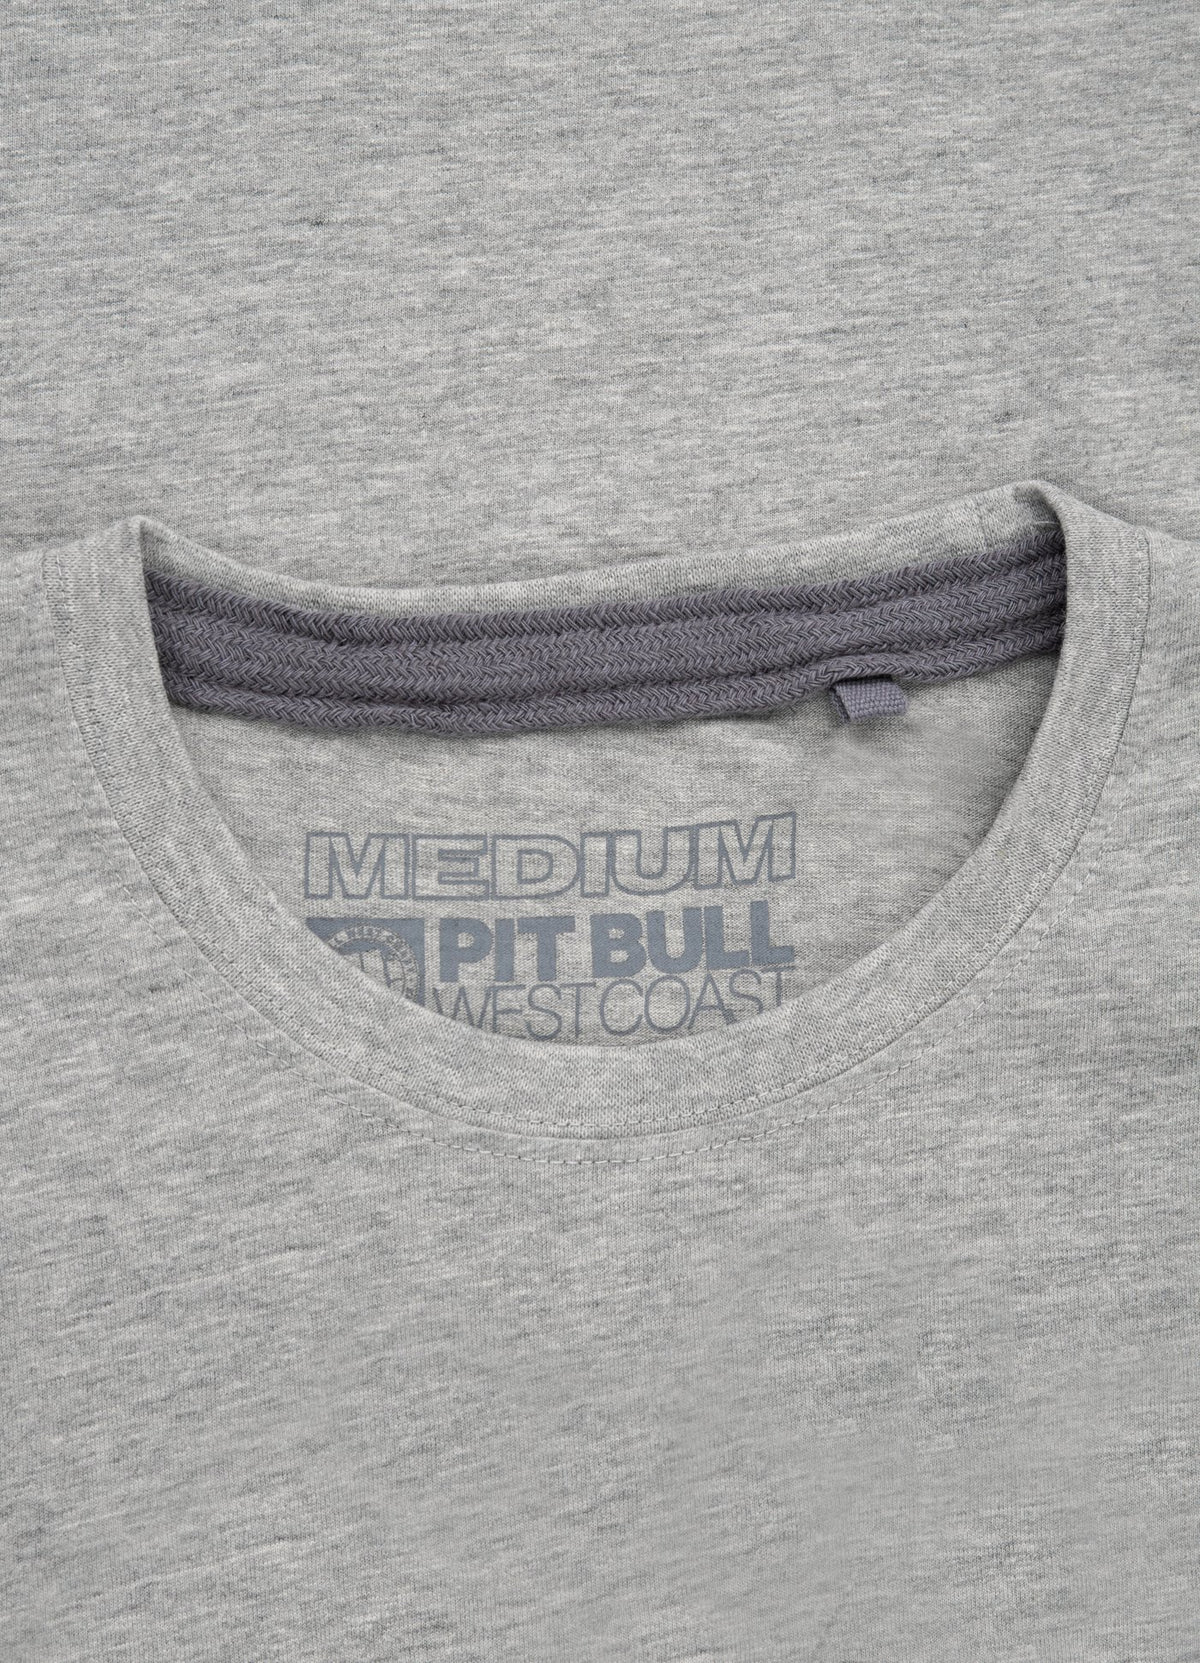 T-shirt TNT Grey MLG - Pitbull West Coast U.S.A.